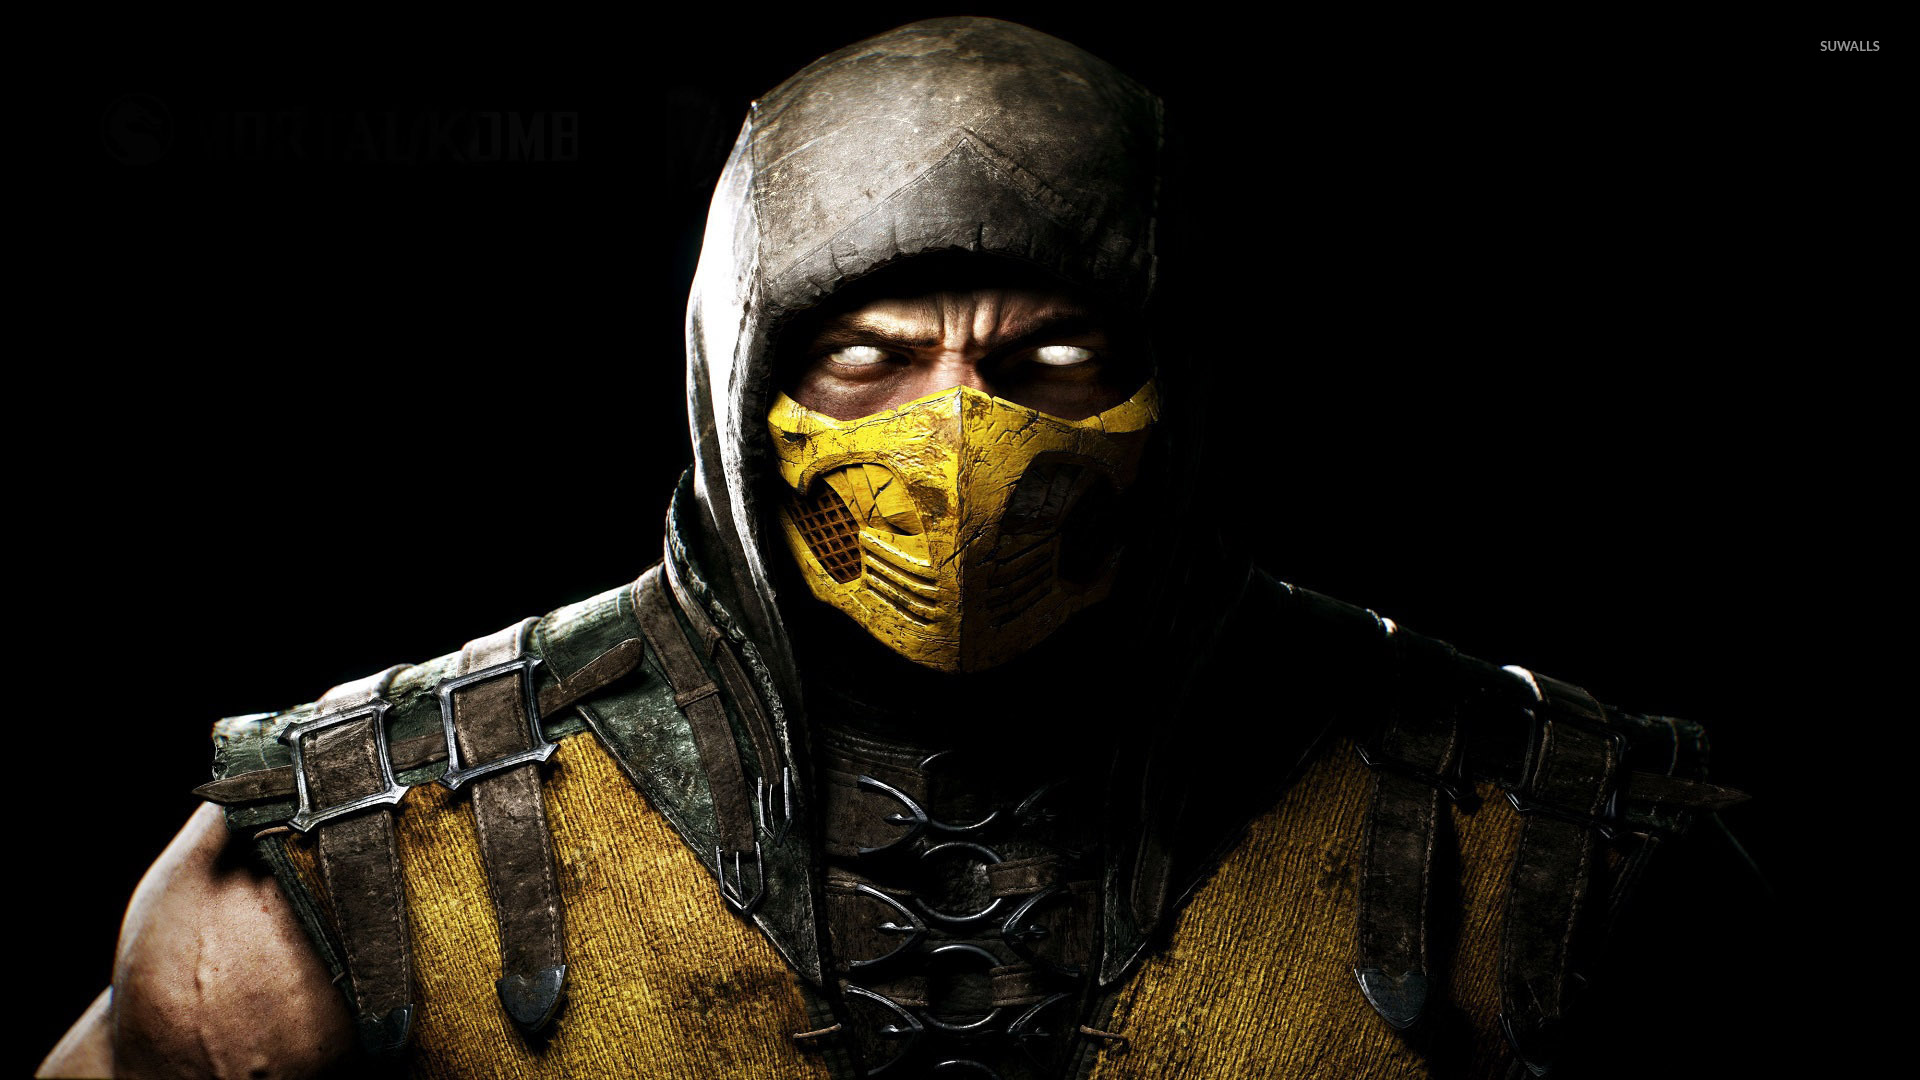 Guitar Hd Wallpaper Download Scorpion Mortal Kombat X Wallpaper 1209853